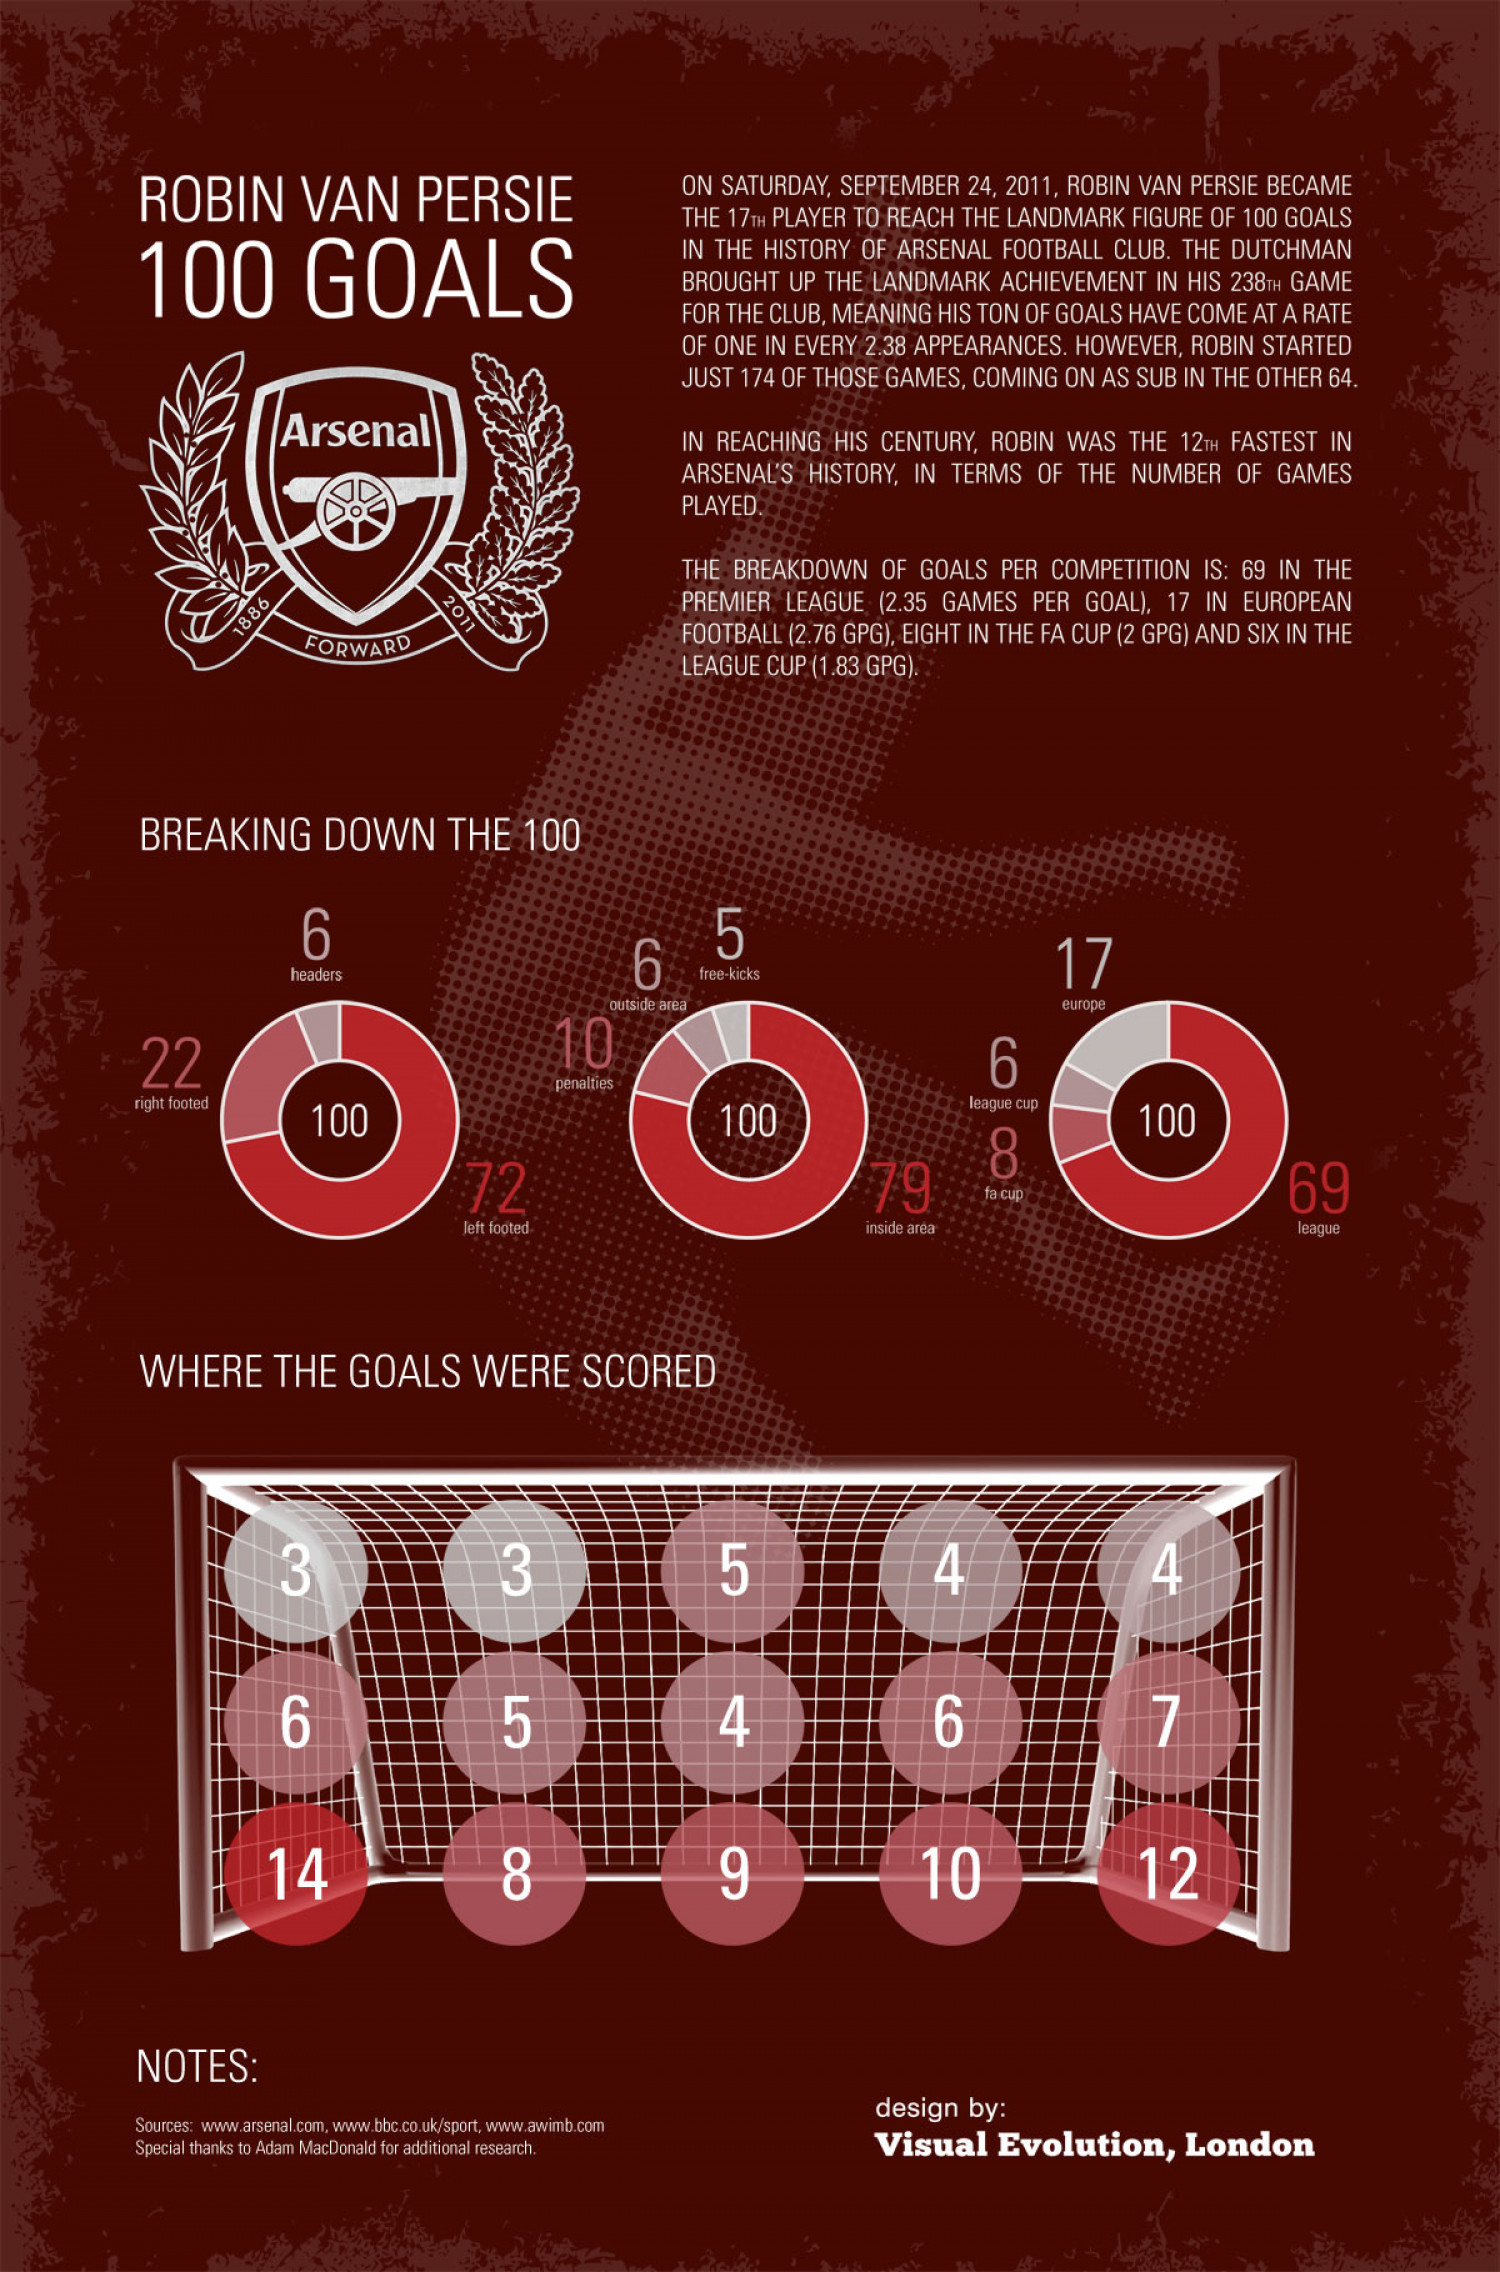 Robin van Persie's 100 goals for Arsenal Infographic